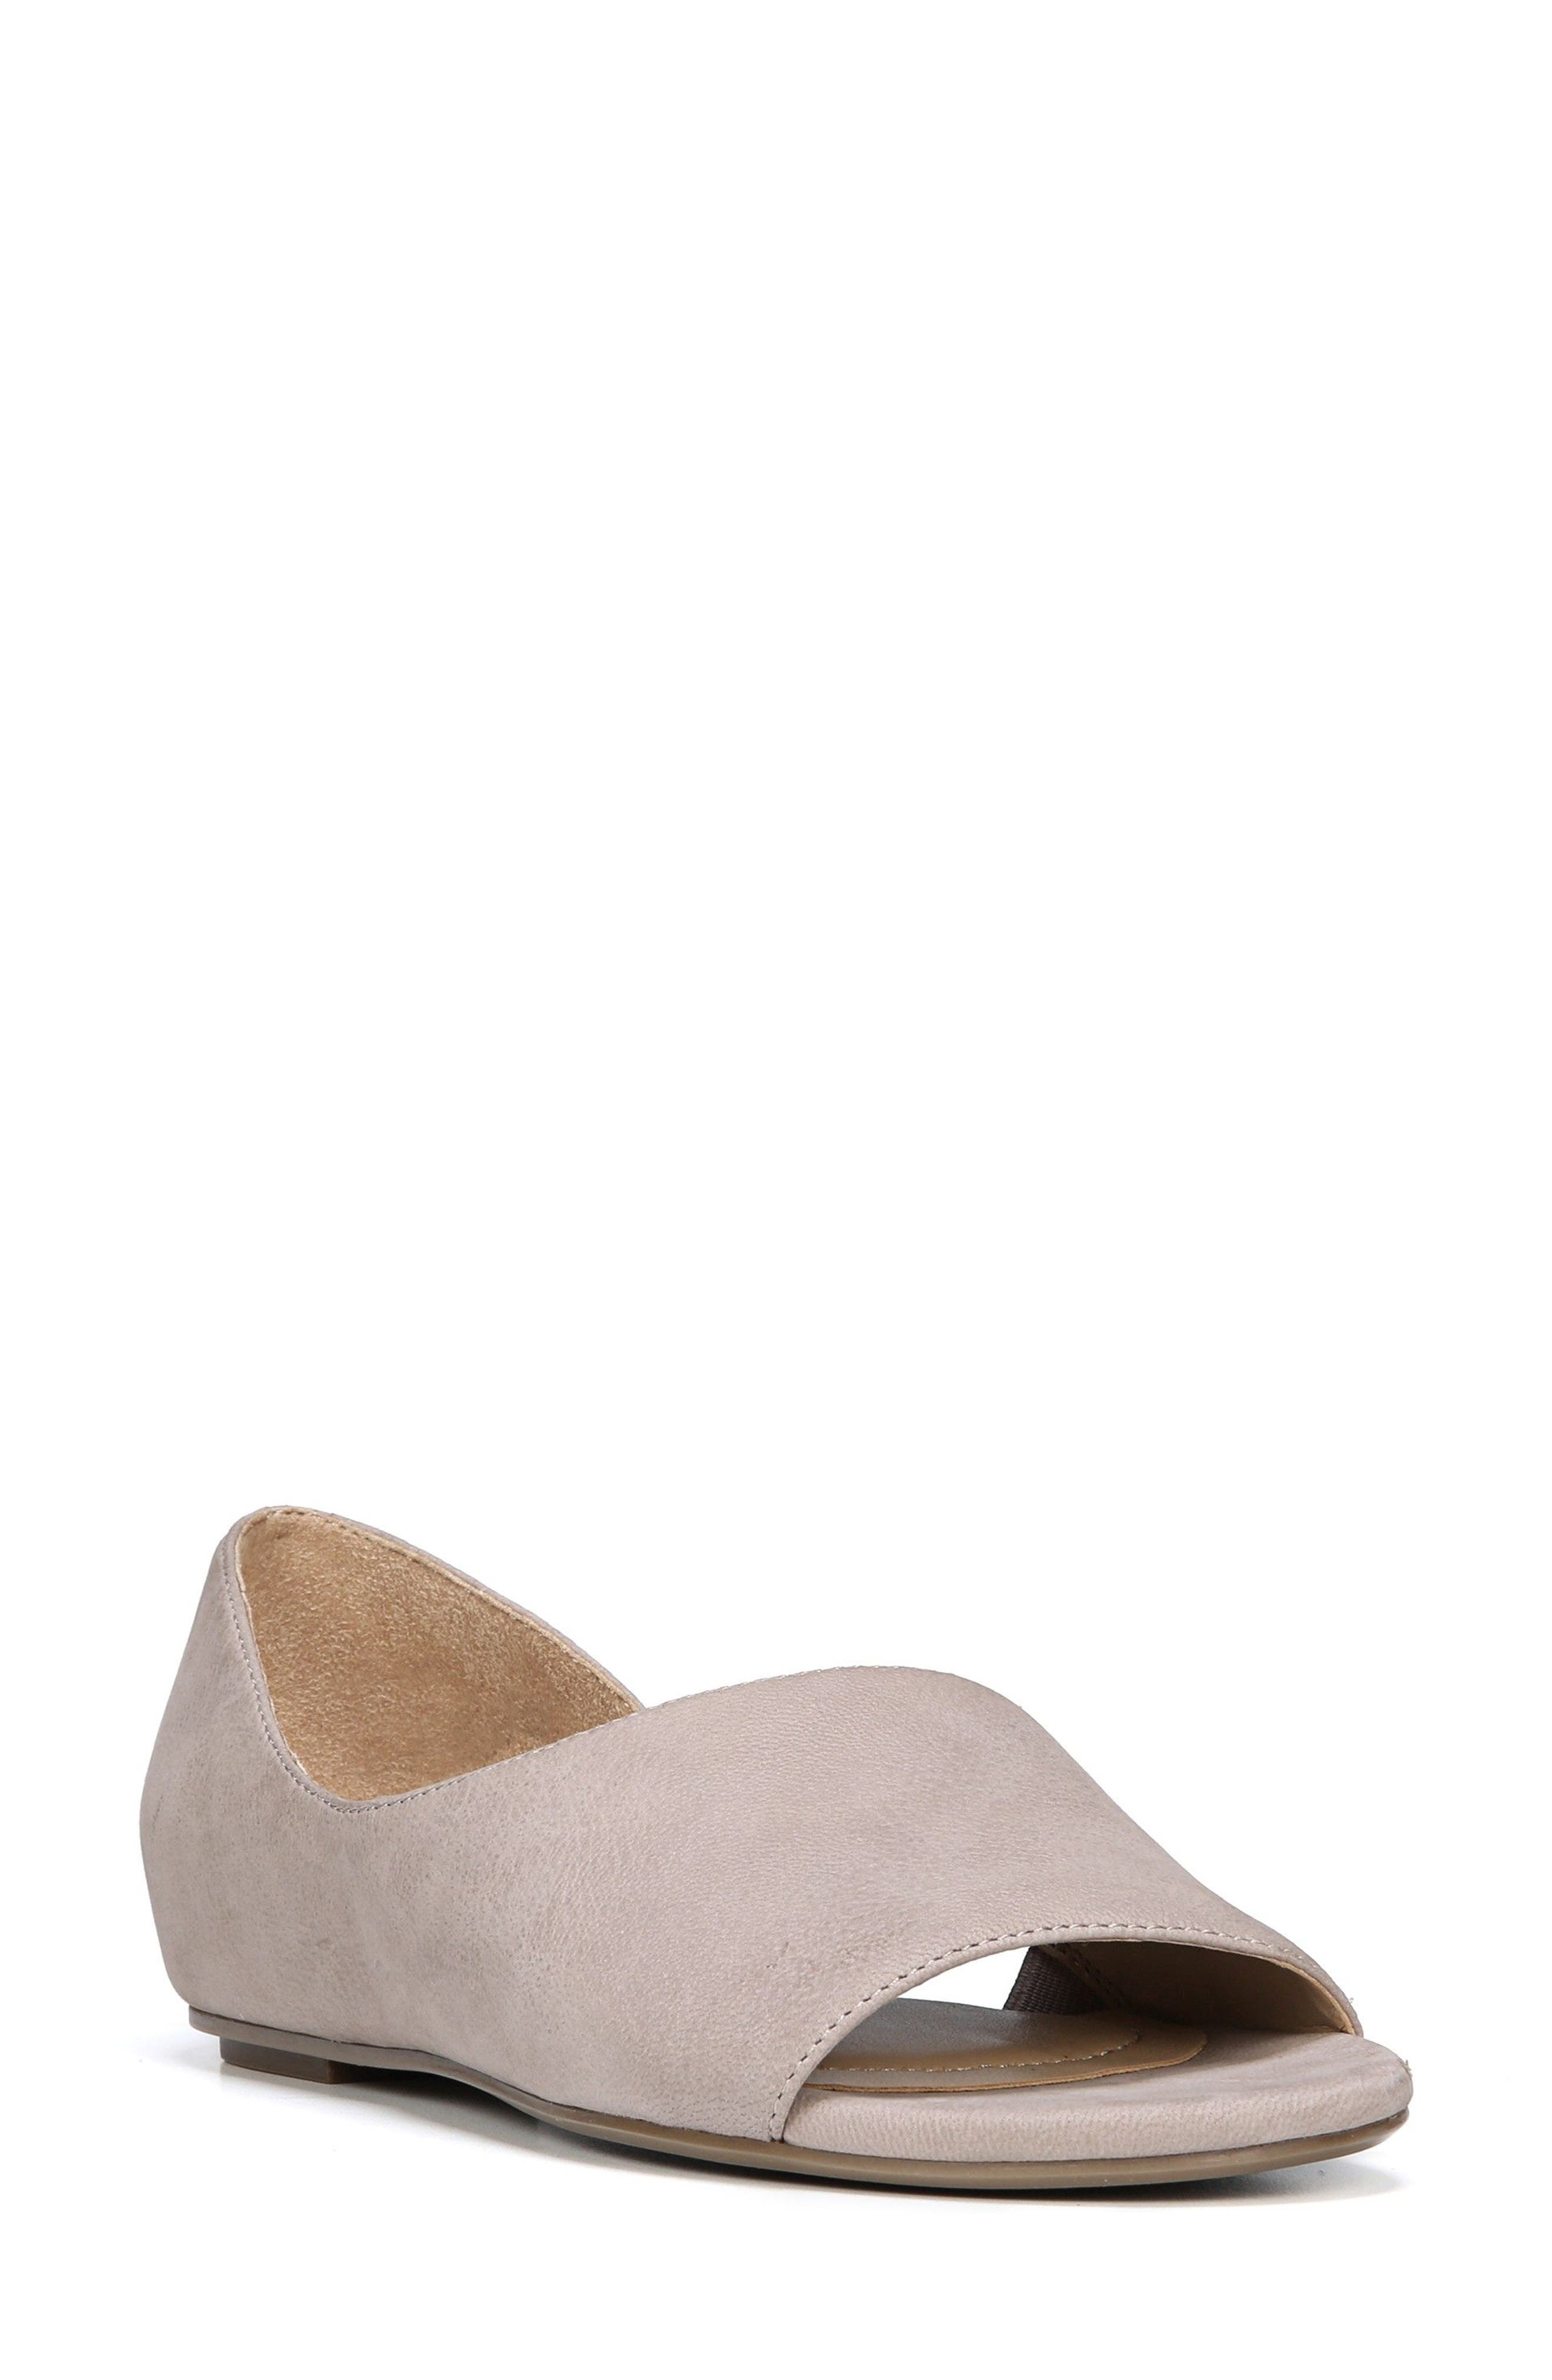 Lucie Half d'Orsay Flat,                         Main,                         color, Dove Leather